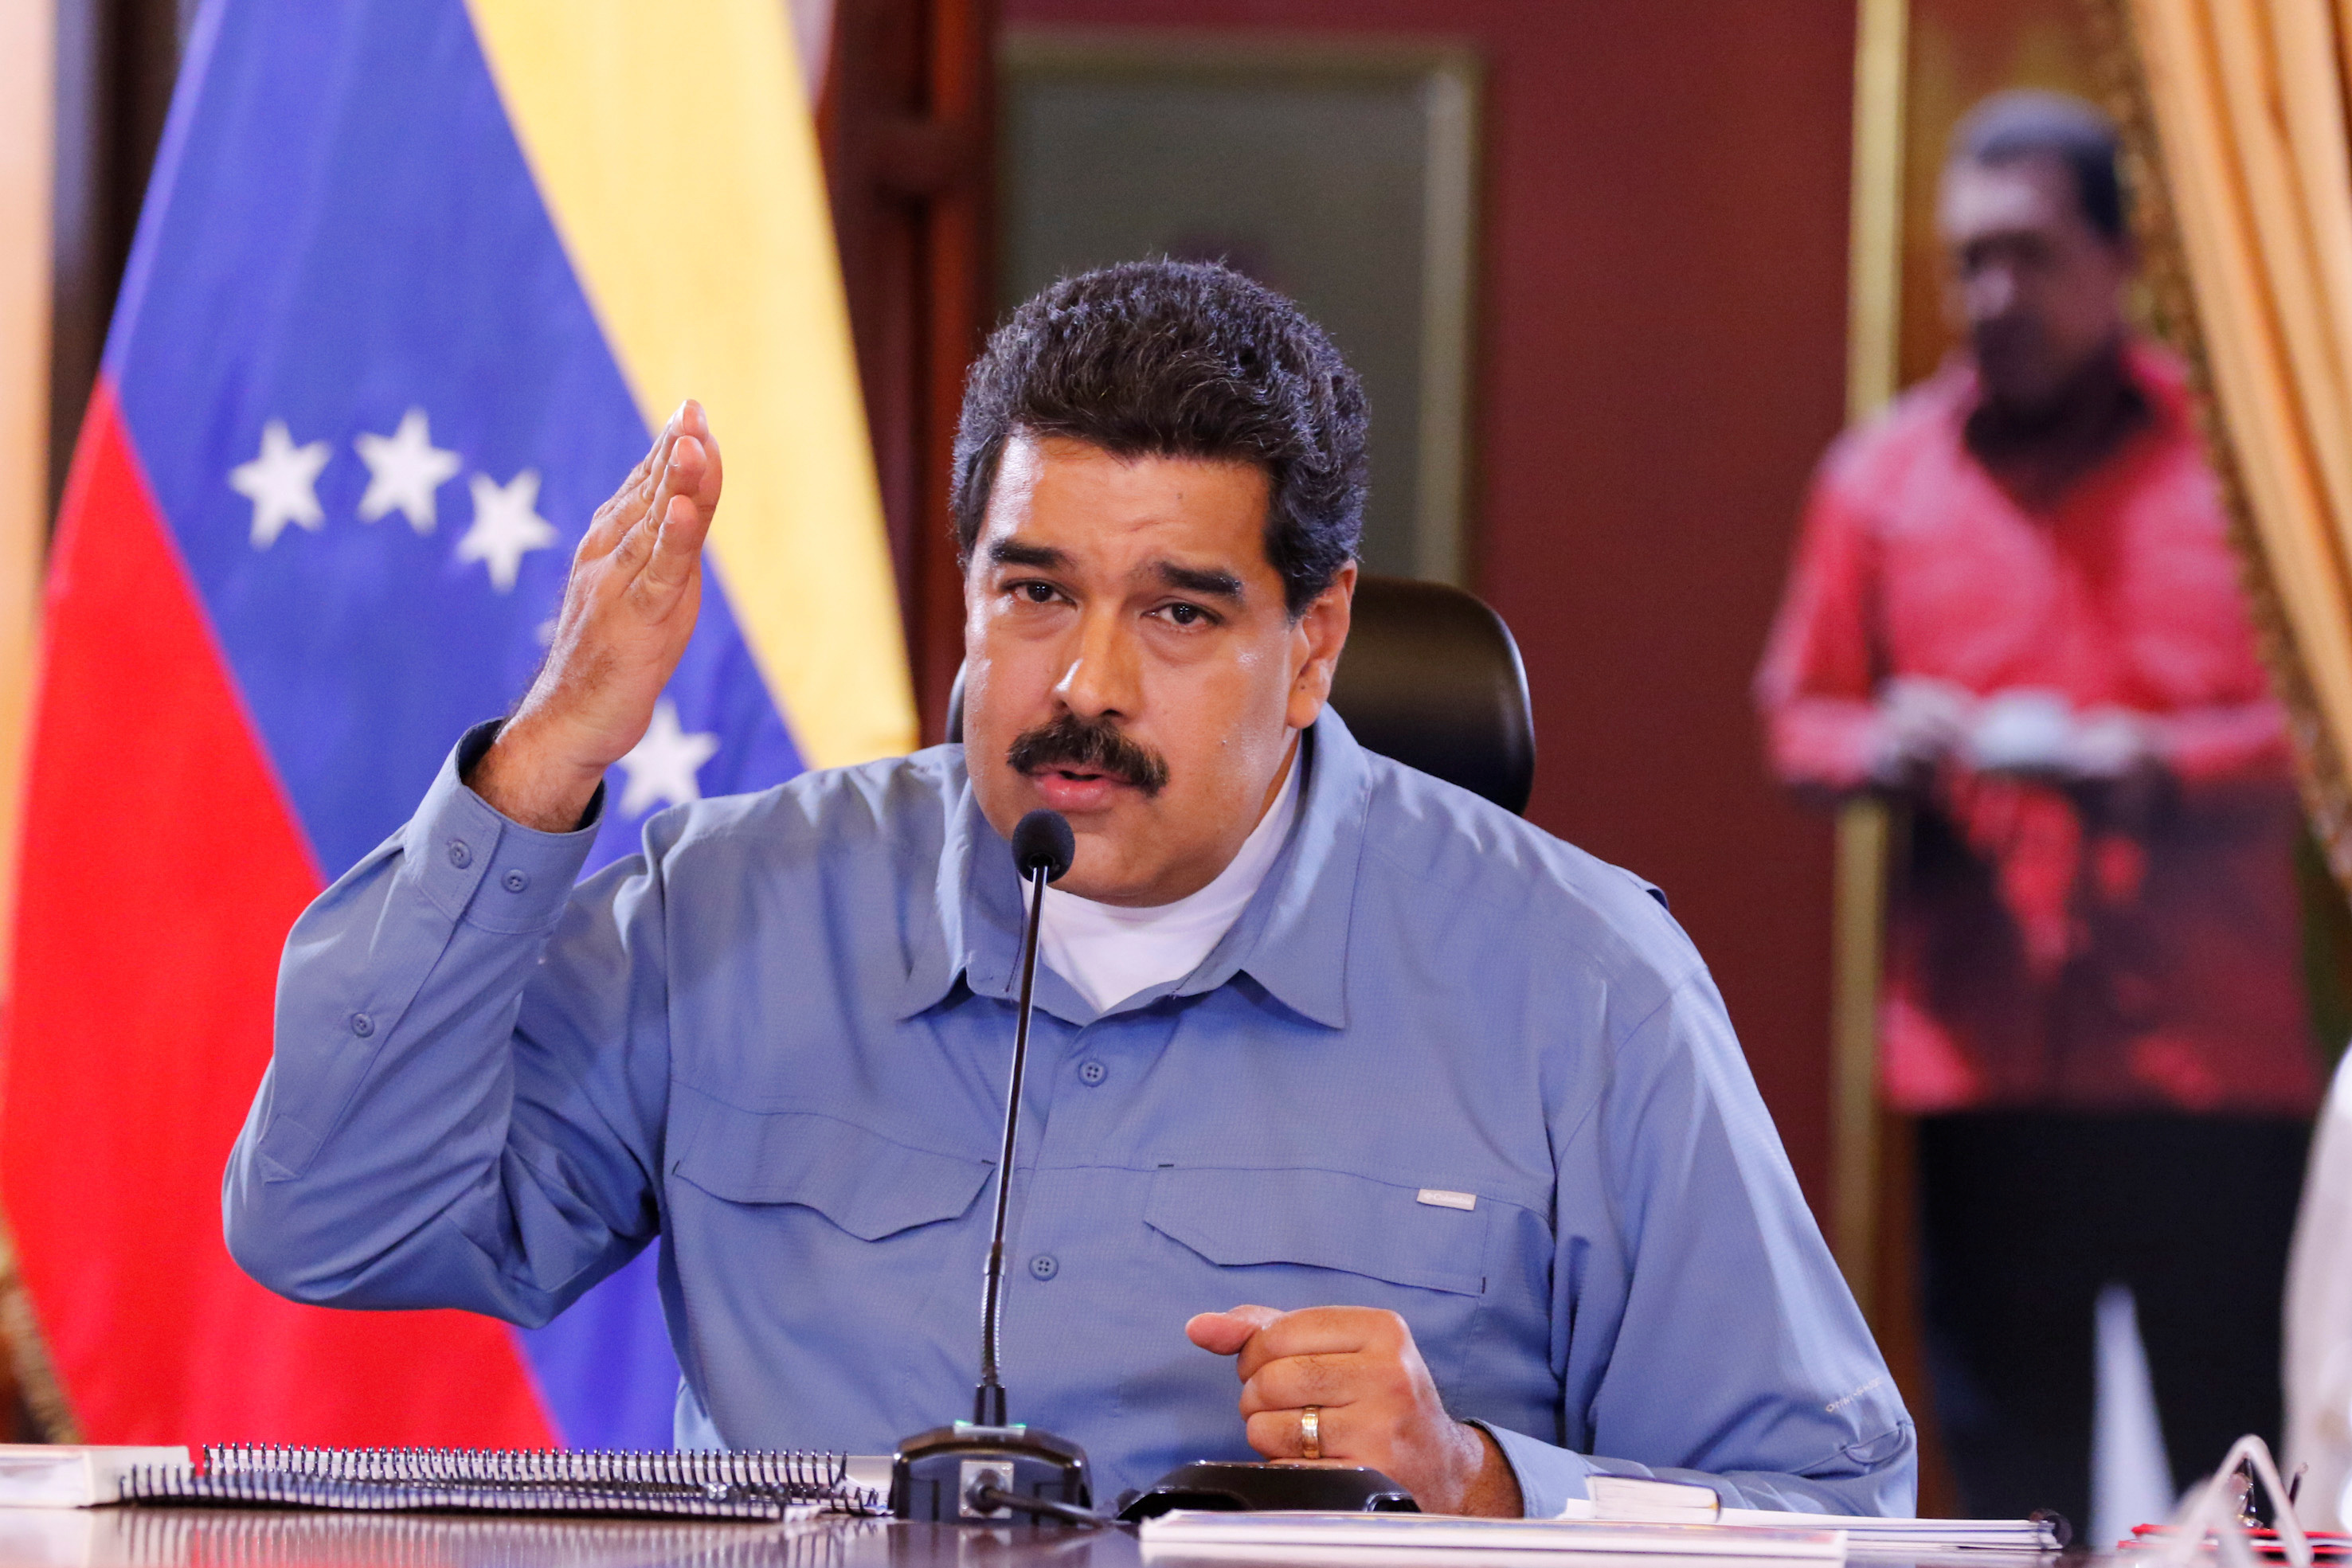 Venezuela's President Nicolas Maduro speaks during a Council of Ministers meeting at Miraflores Palace in Caracas, Venezuela July 11, 2016